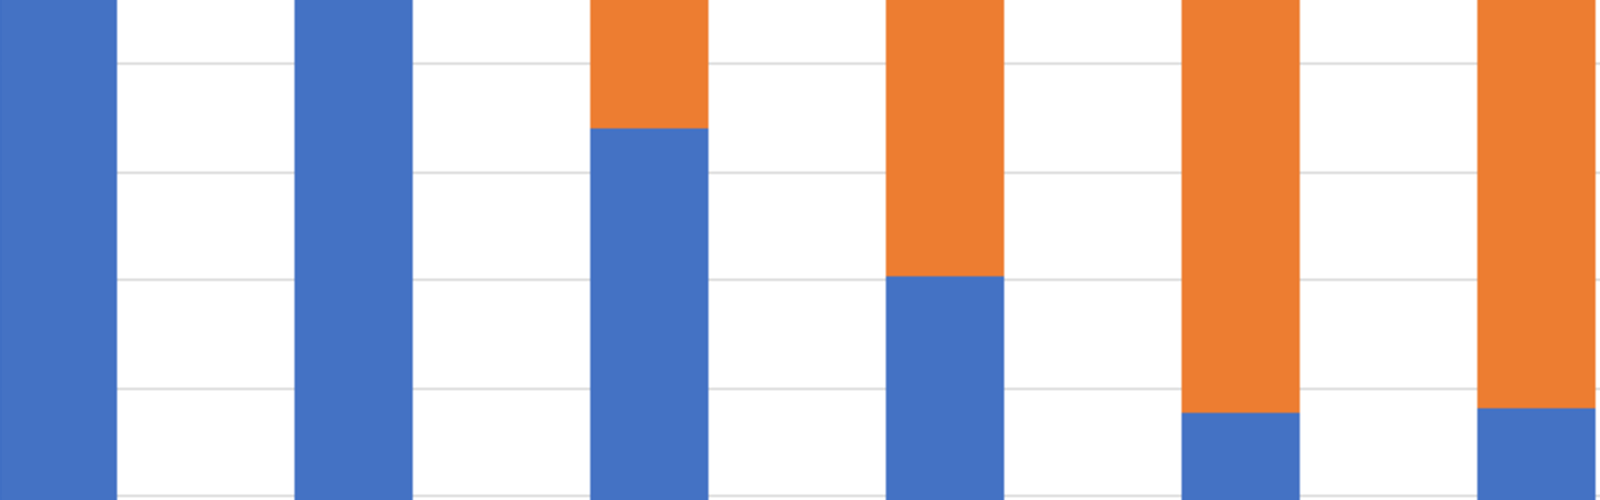 A close up of a graph with blue and orange bars